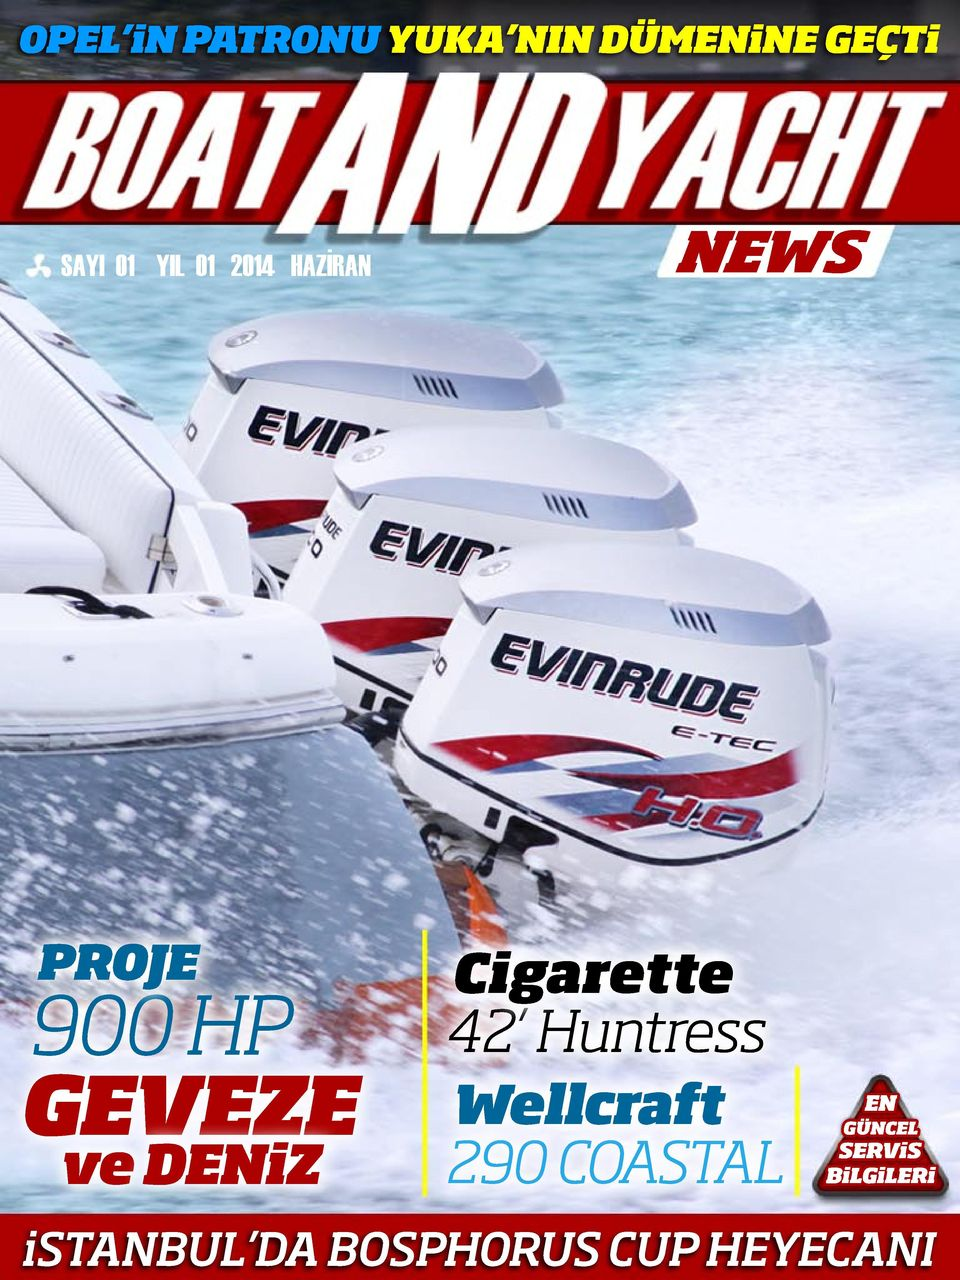 NEWS PROJE 900 HP Cigarette 42 Huntress GEVEZE ve